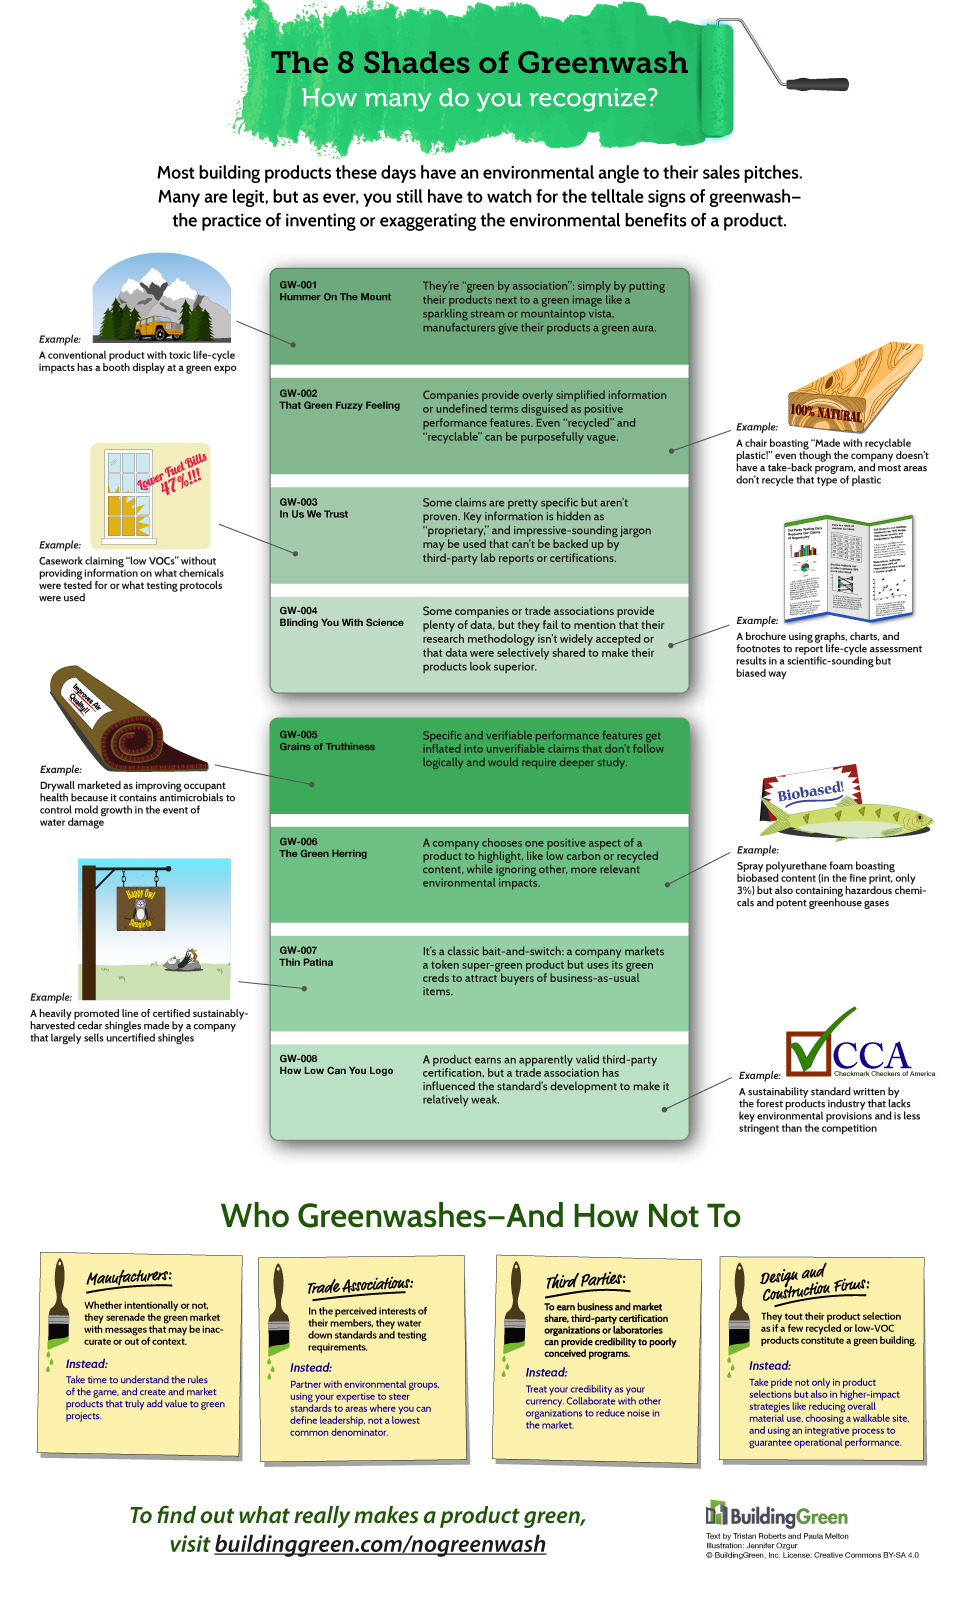 The 8 Shades of Greenwash: How Many Do You Recognize?